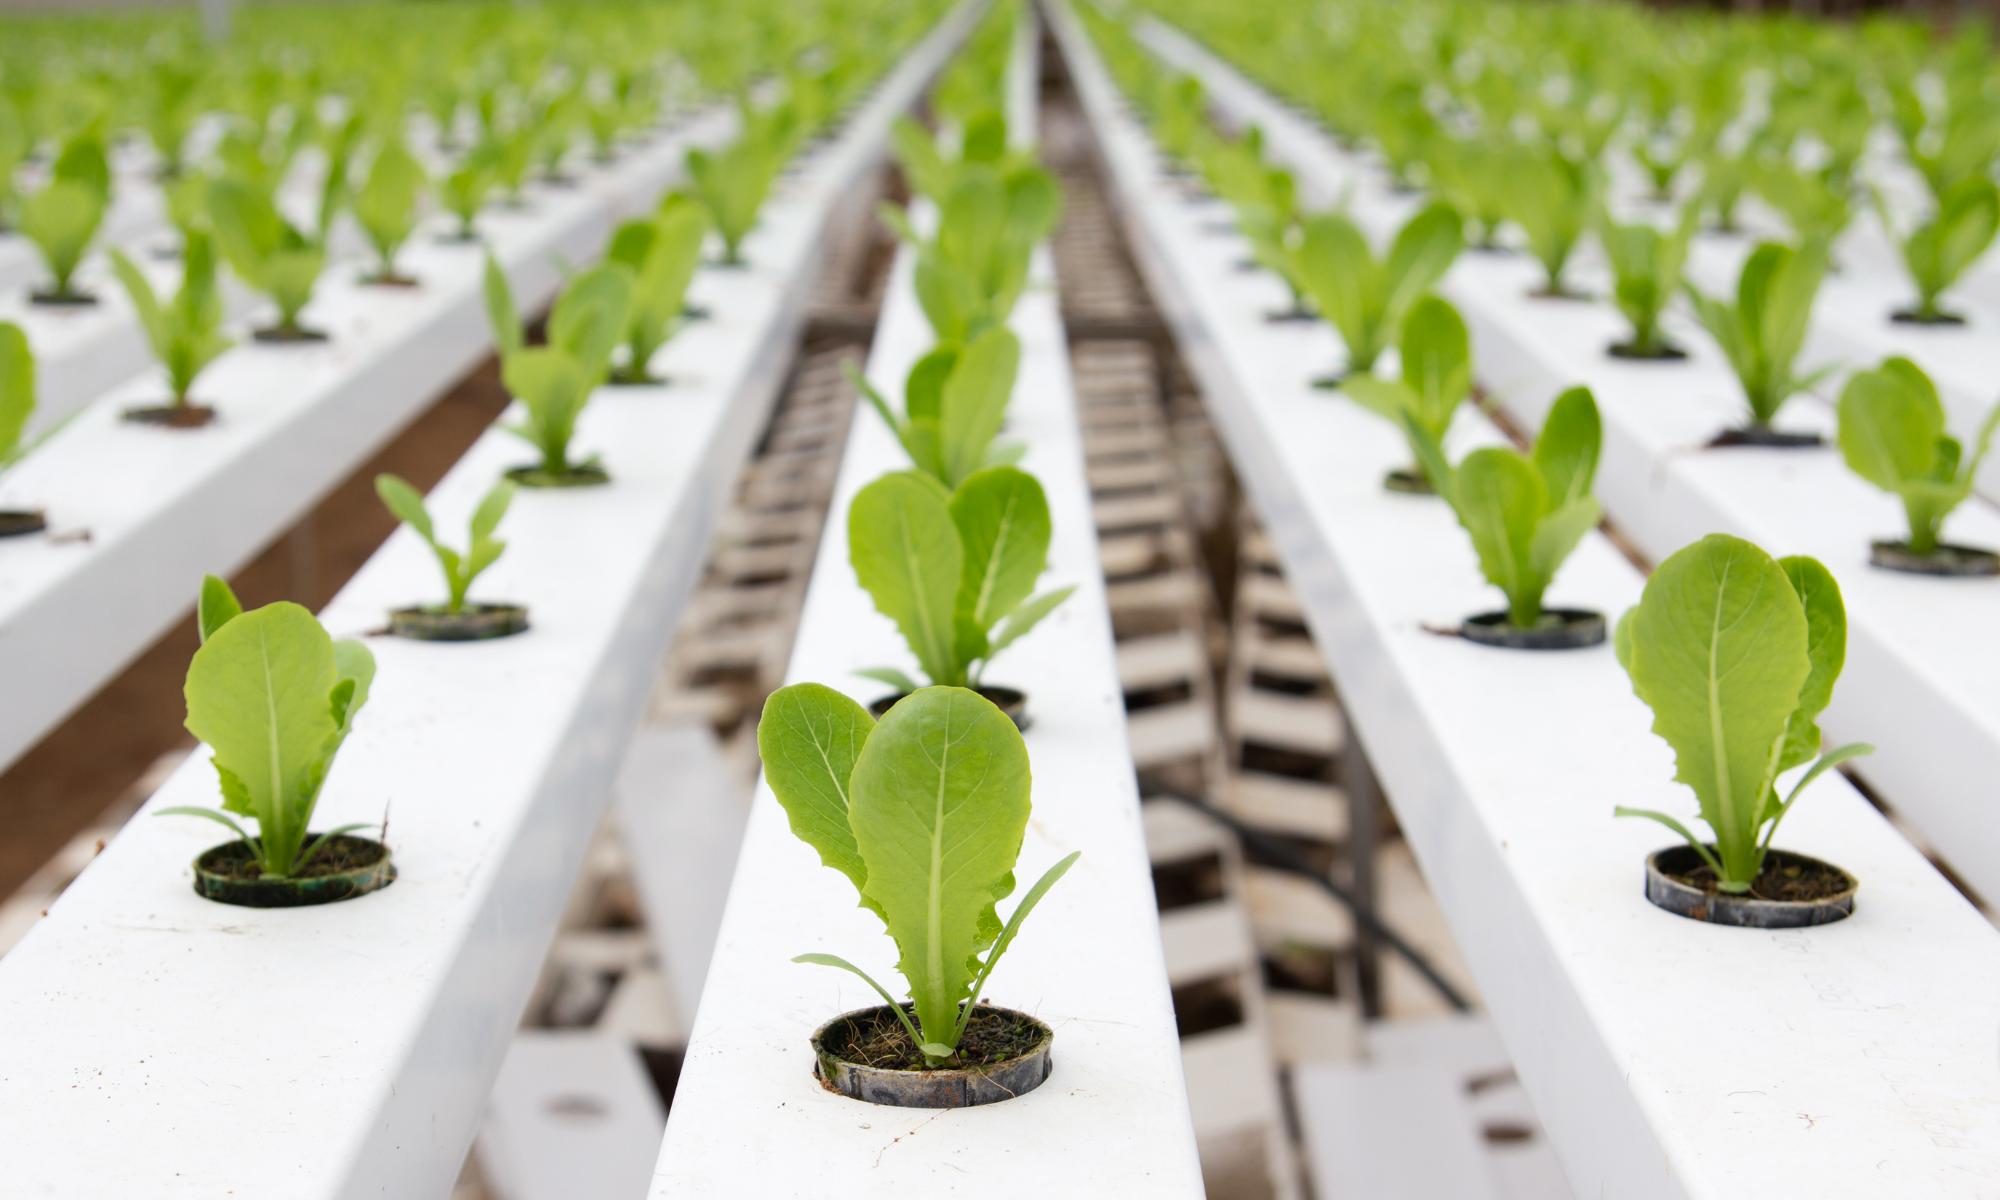 How to Use Rockwool in Hydroponics